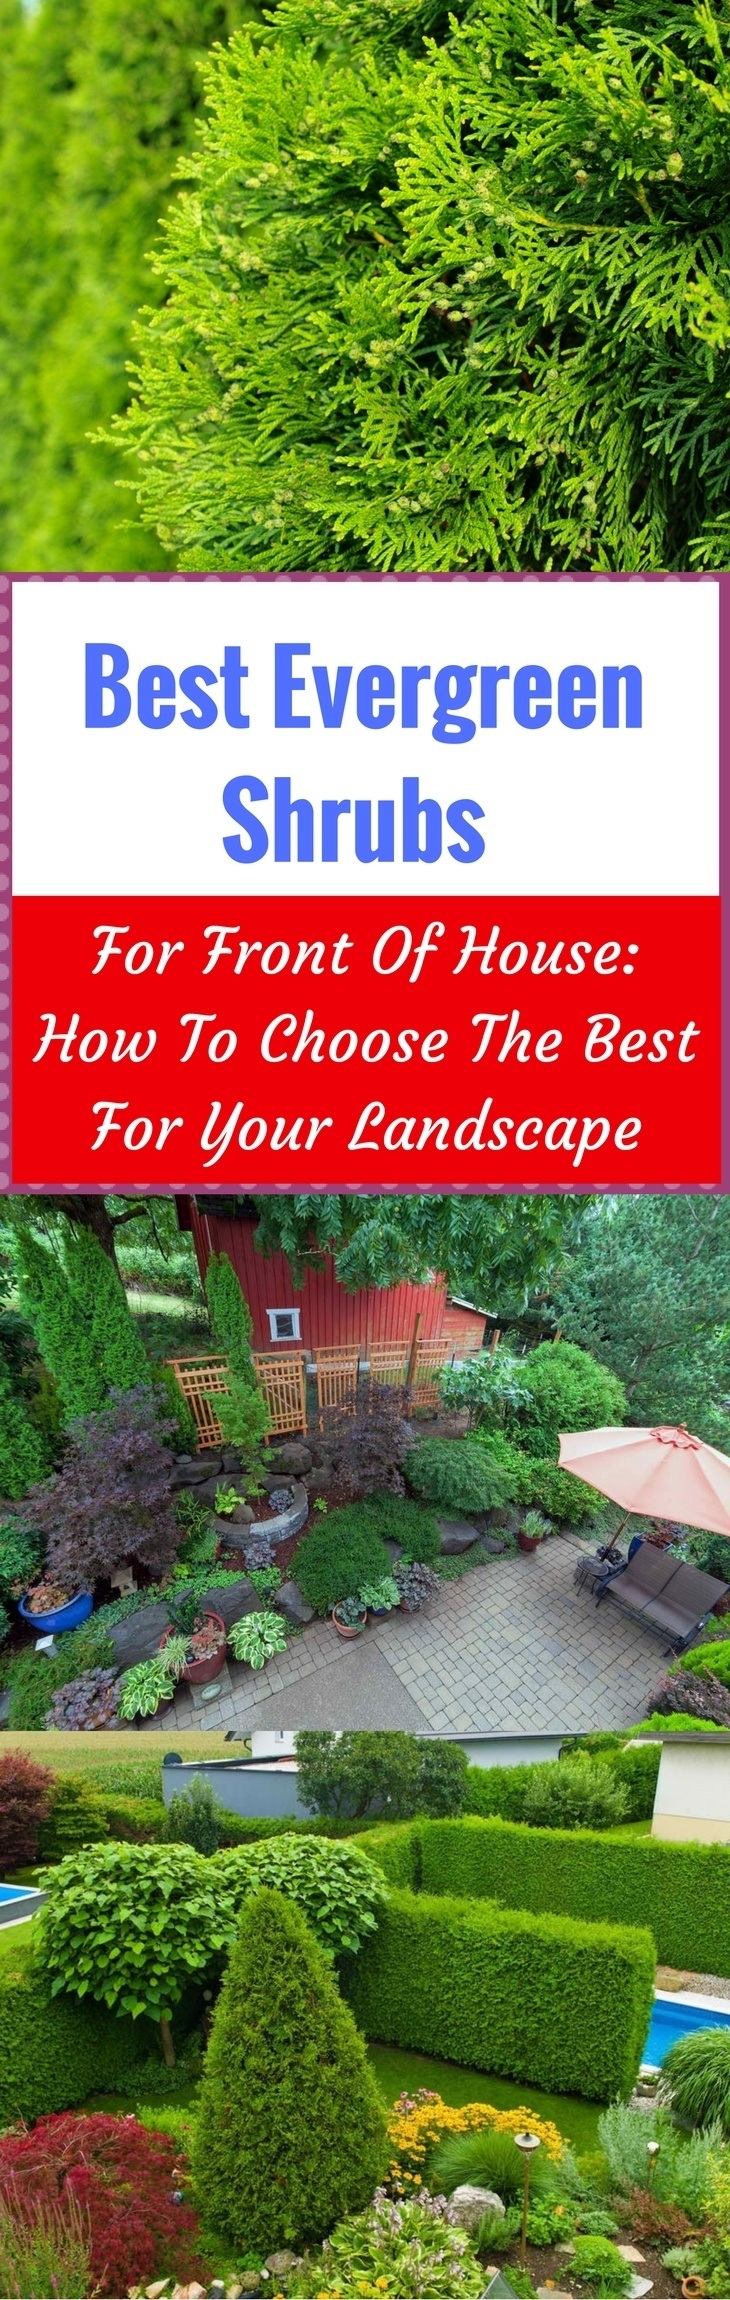 Best Evergreen Shrubs For Front Of House How To Choose